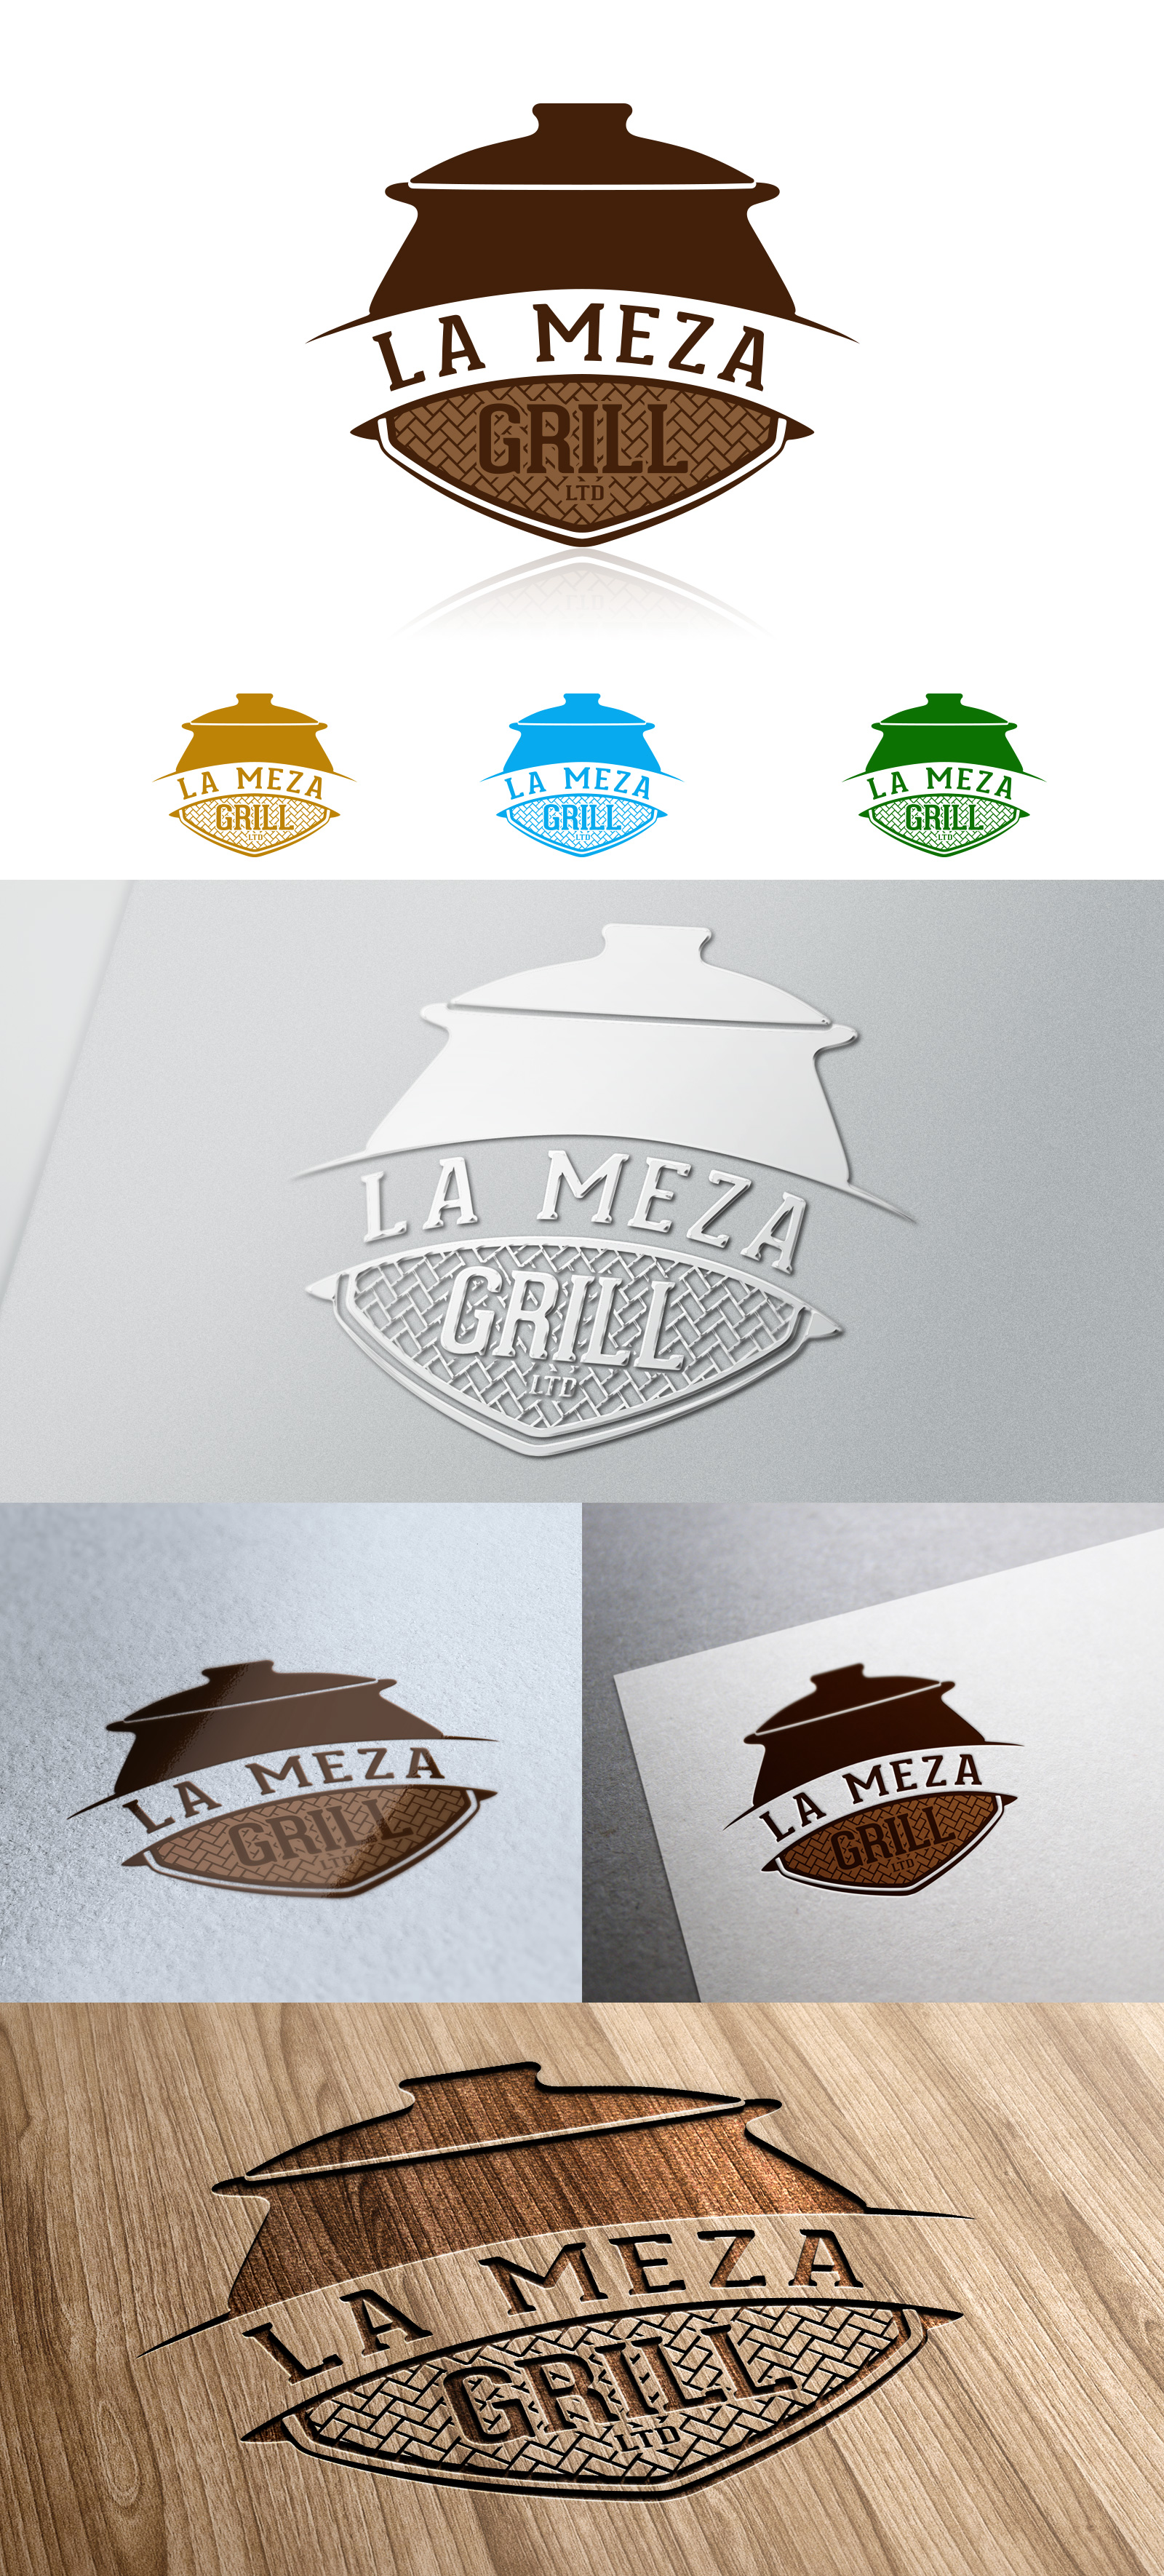 Logo Design by olii - Entry No. 72 in the Logo Design Contest Inspiring Logo Design for La Meza Grill Ltd..